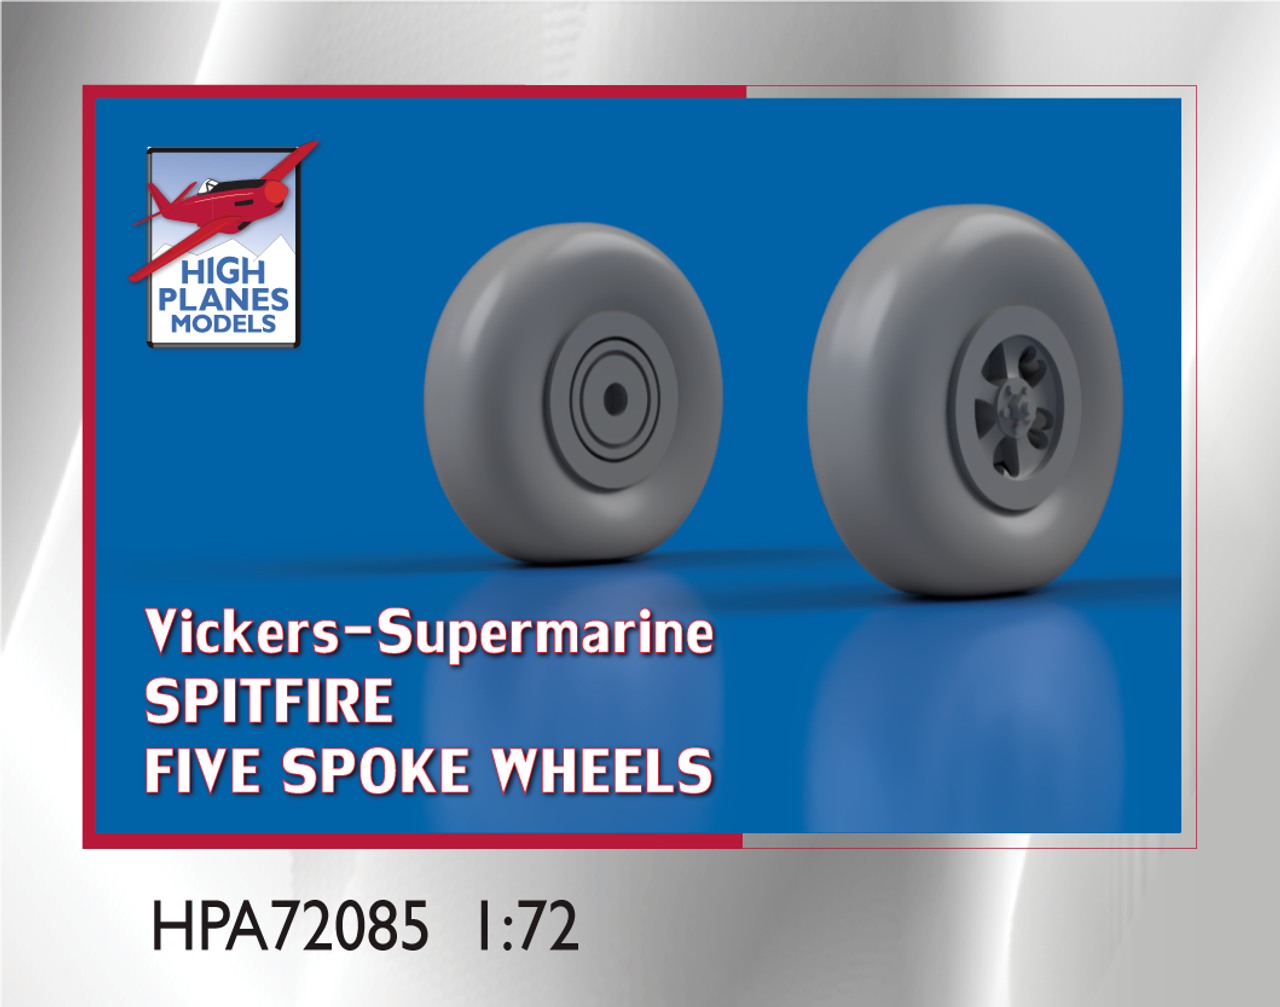 High Planes V-S Spitfire Five Spoke Wheels 1:72 Accessories (HPA072085)